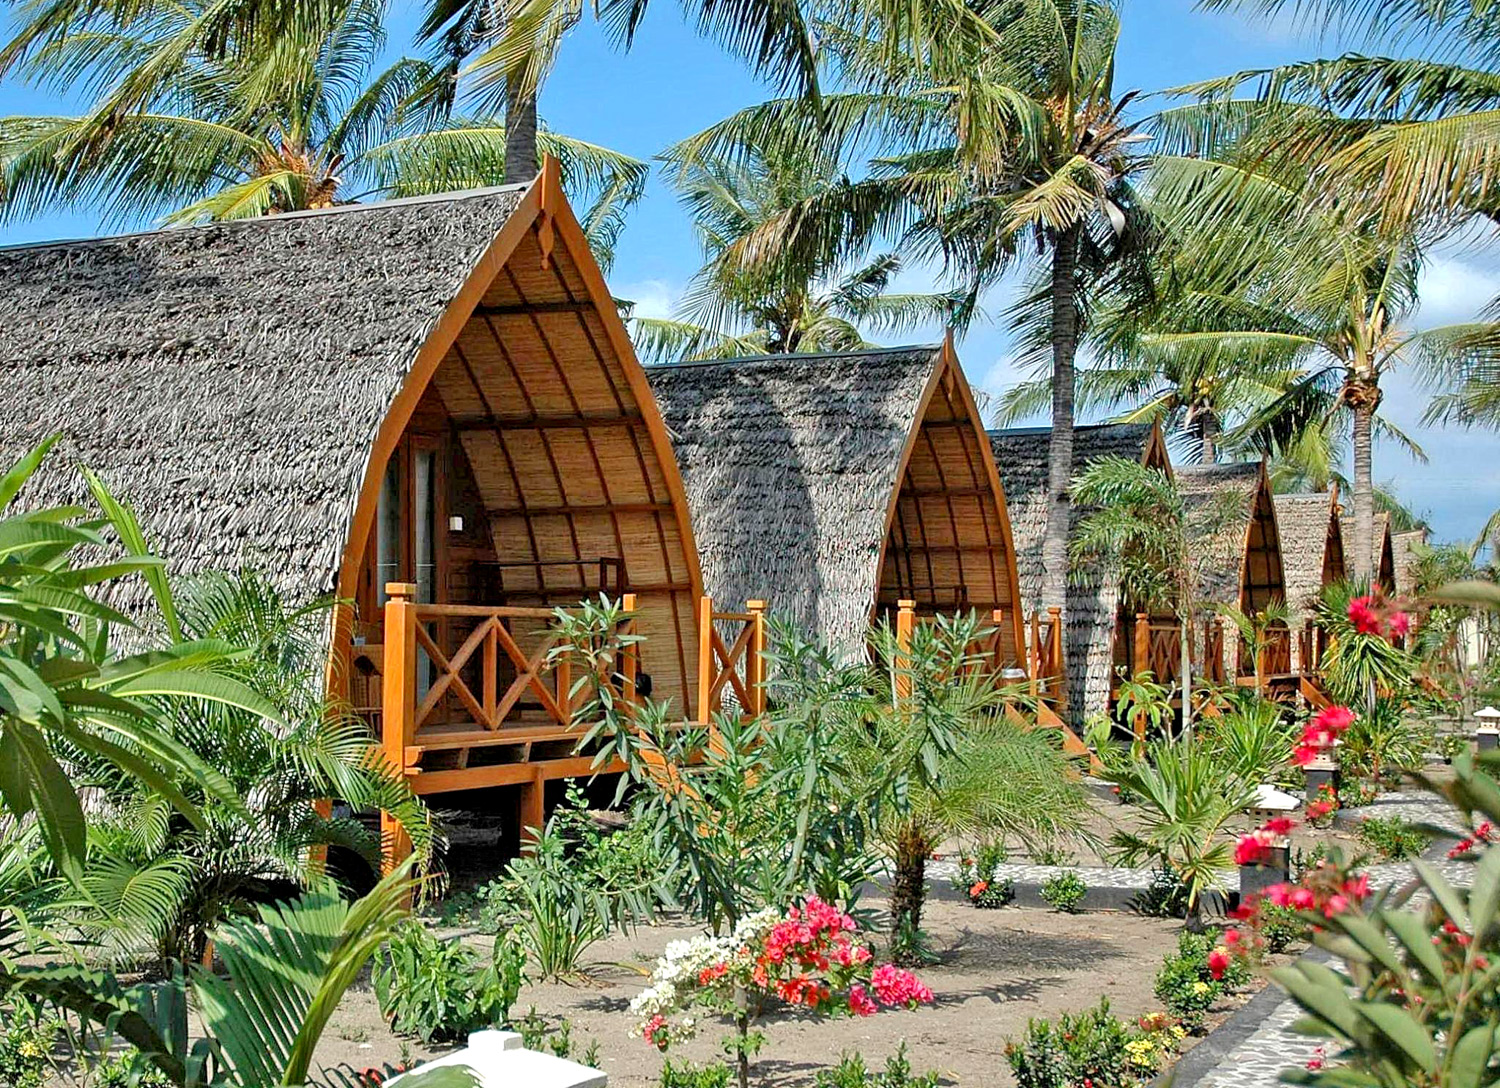 Gili Meno, Bungalows in stile Balinese, Indonesiano